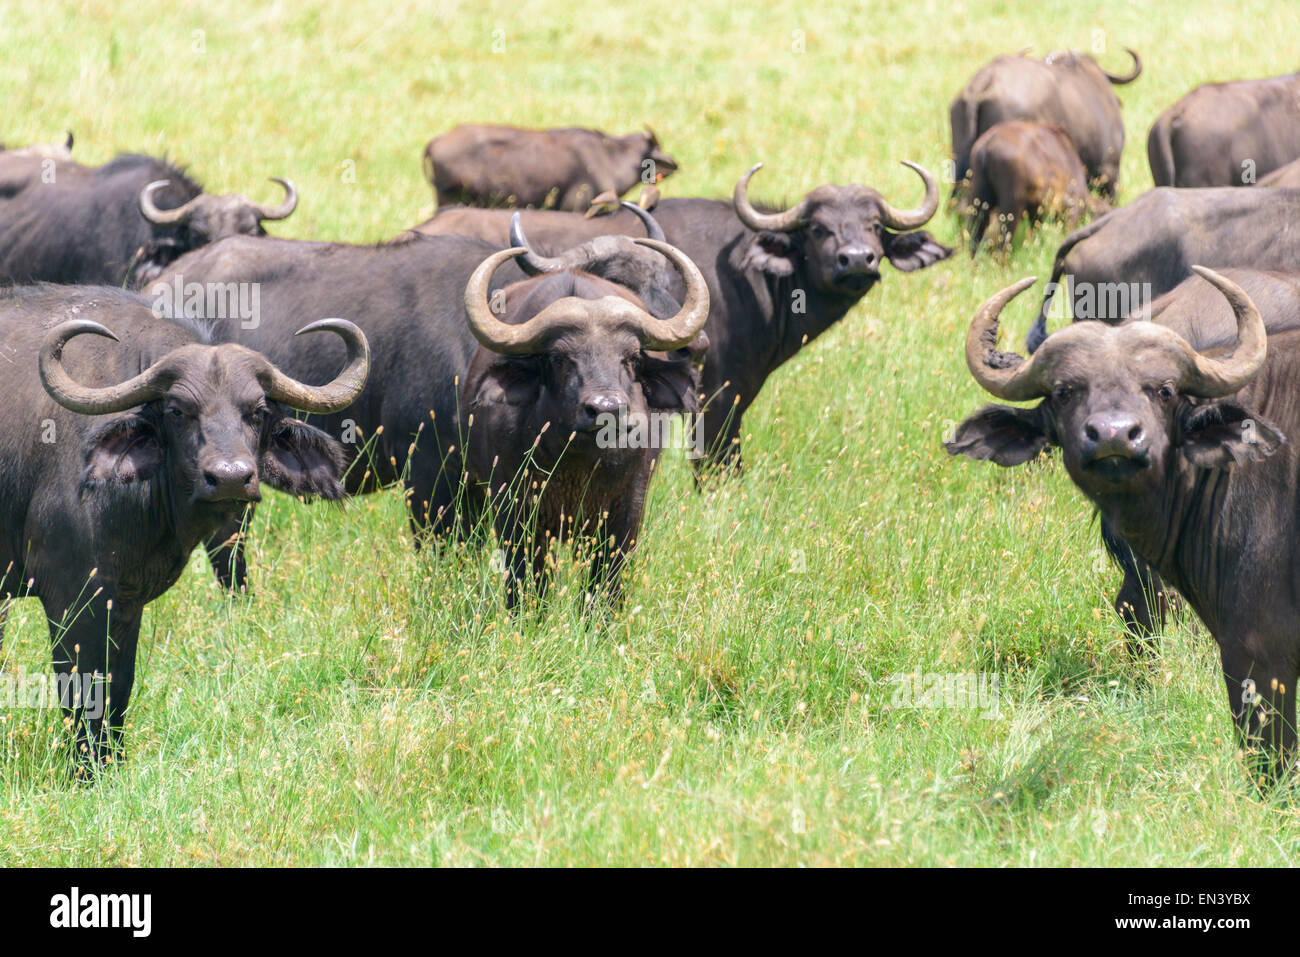 Syncerus caffer, African buffalo, Cape buffalo in Ngorongoro Conservation Area, Tanzania, Africa. Stock Photo